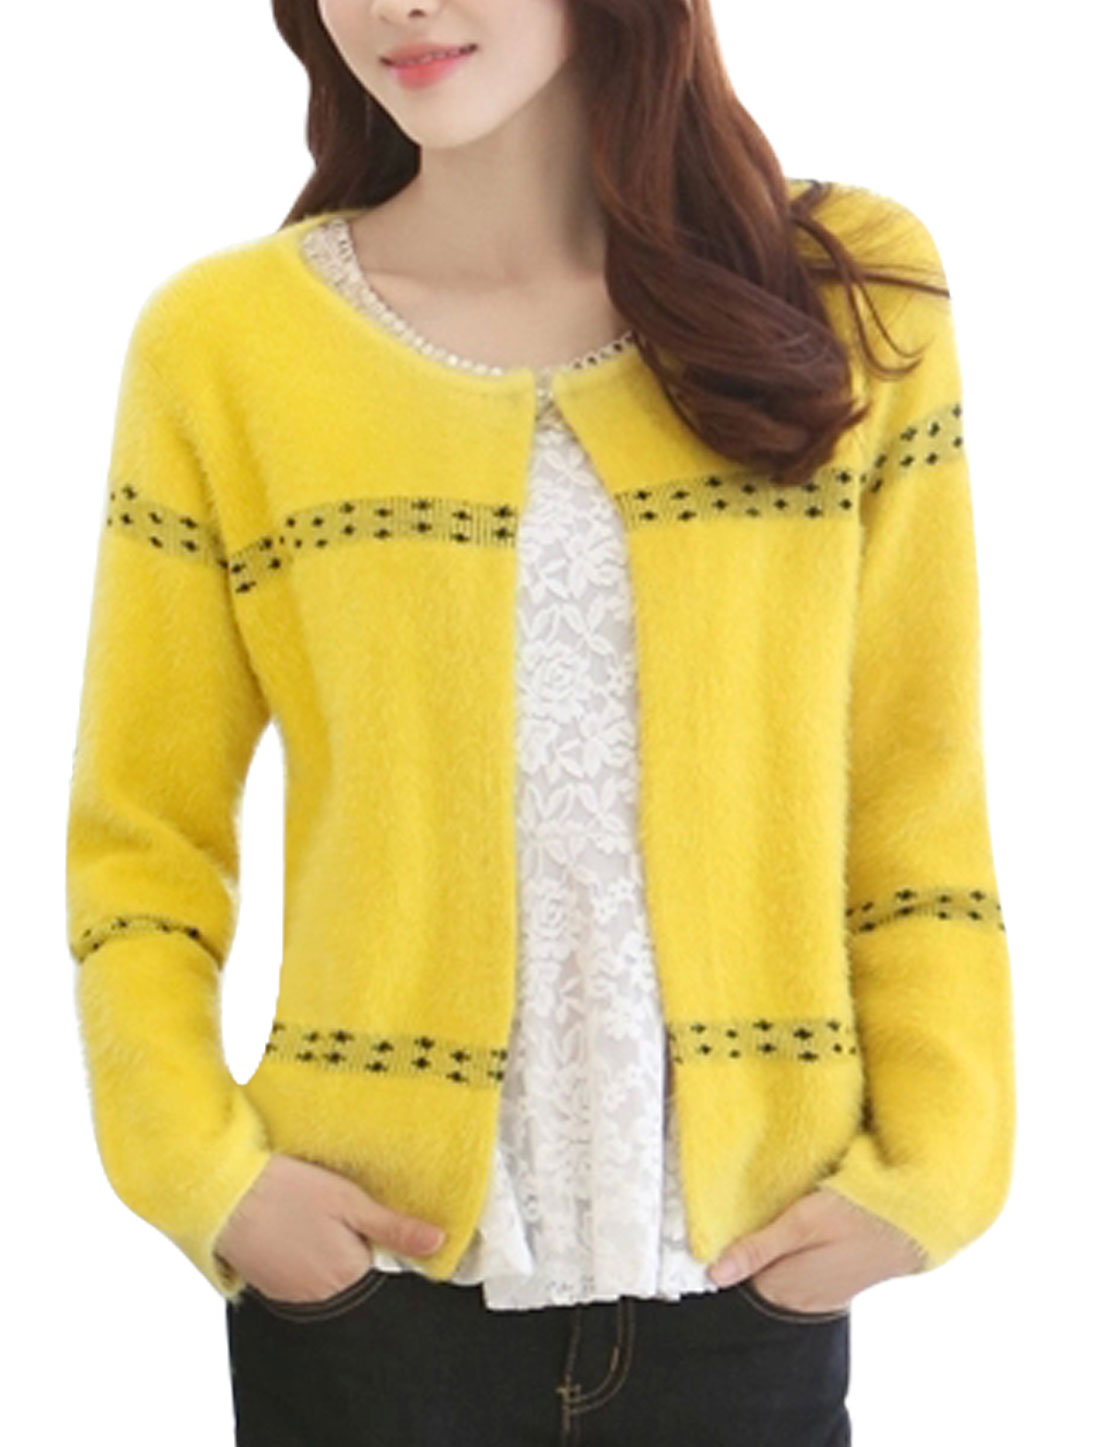 New Style Front Opening Stylish Casual Cardigan w Pearl Brooch Yellow S